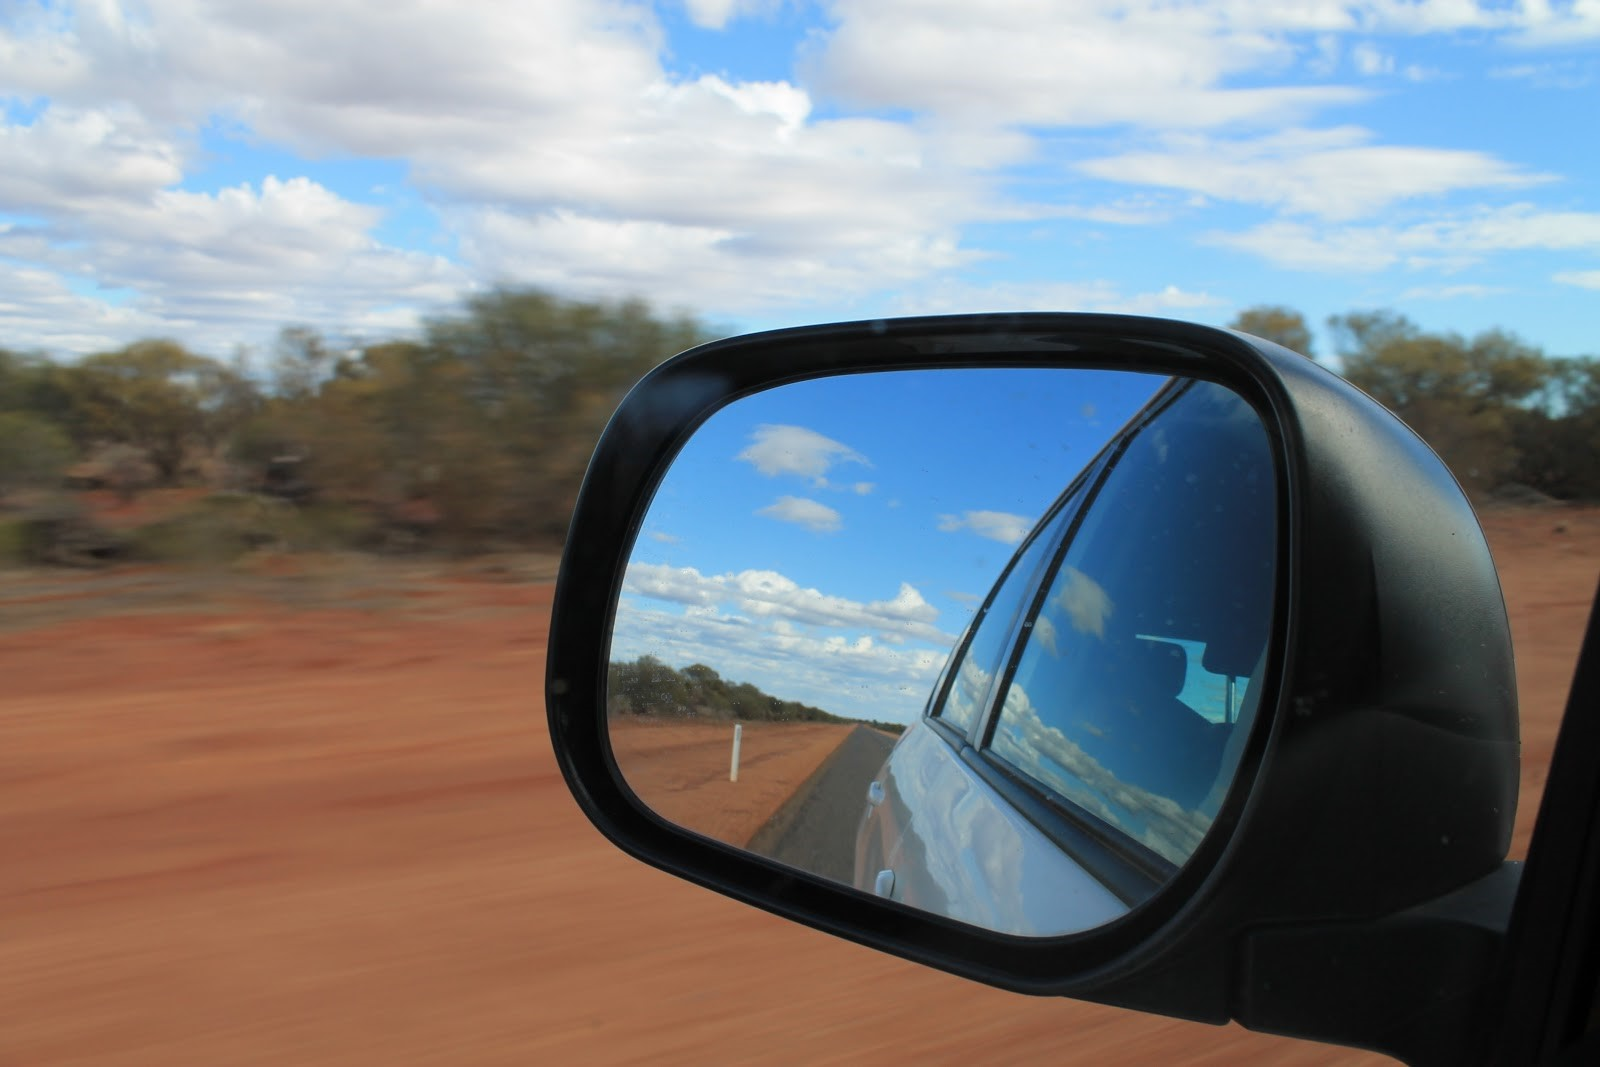 The Ultimate Australian Road Trip Guide: Part 1